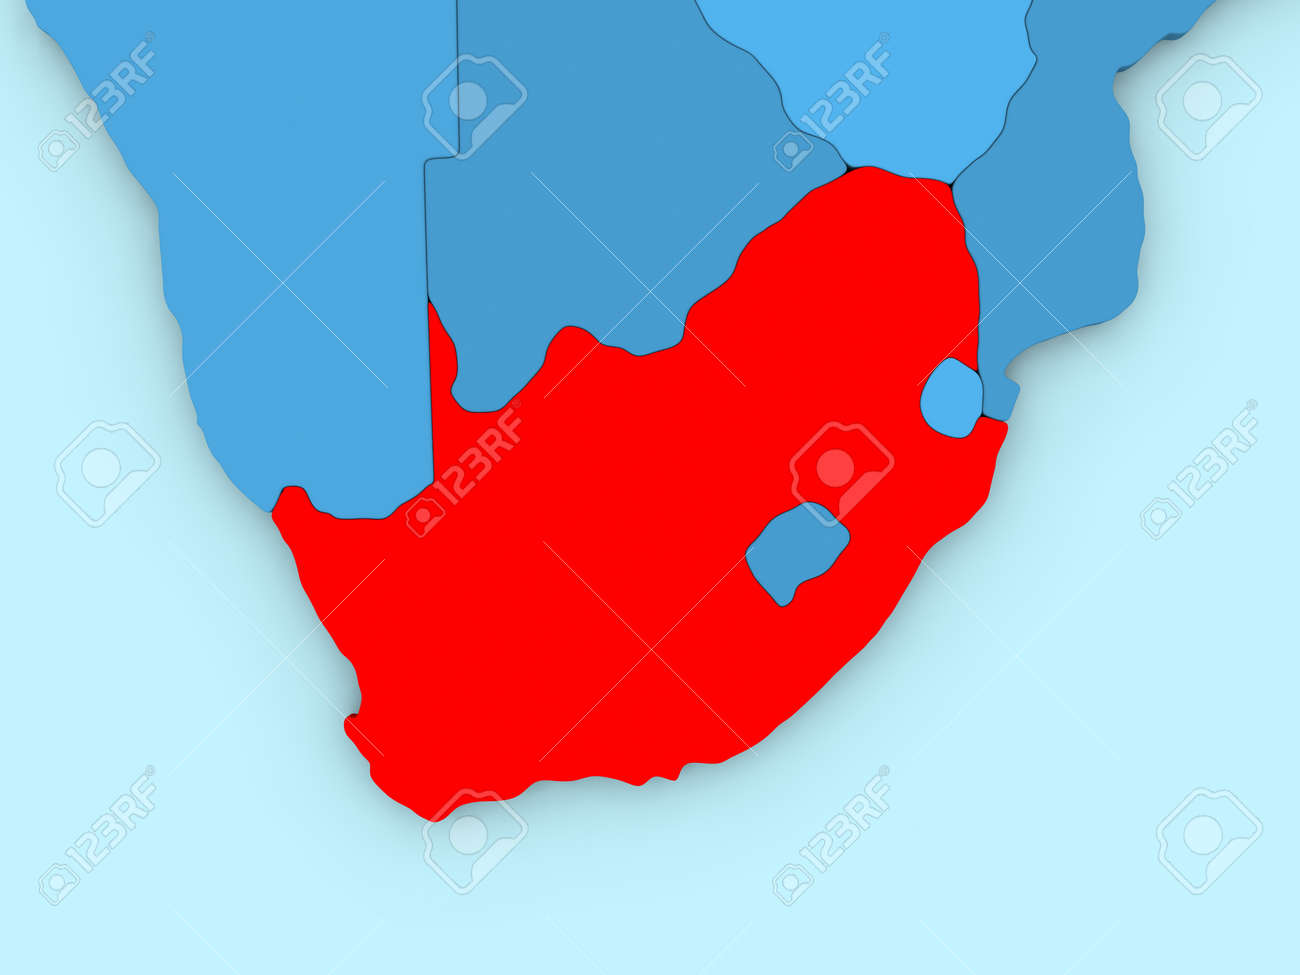 Country of south africa highlighted in red on blue map 3d country of south africa highlighted in red on blue map 3d illustration stock illustration gumiabroncs Image collections